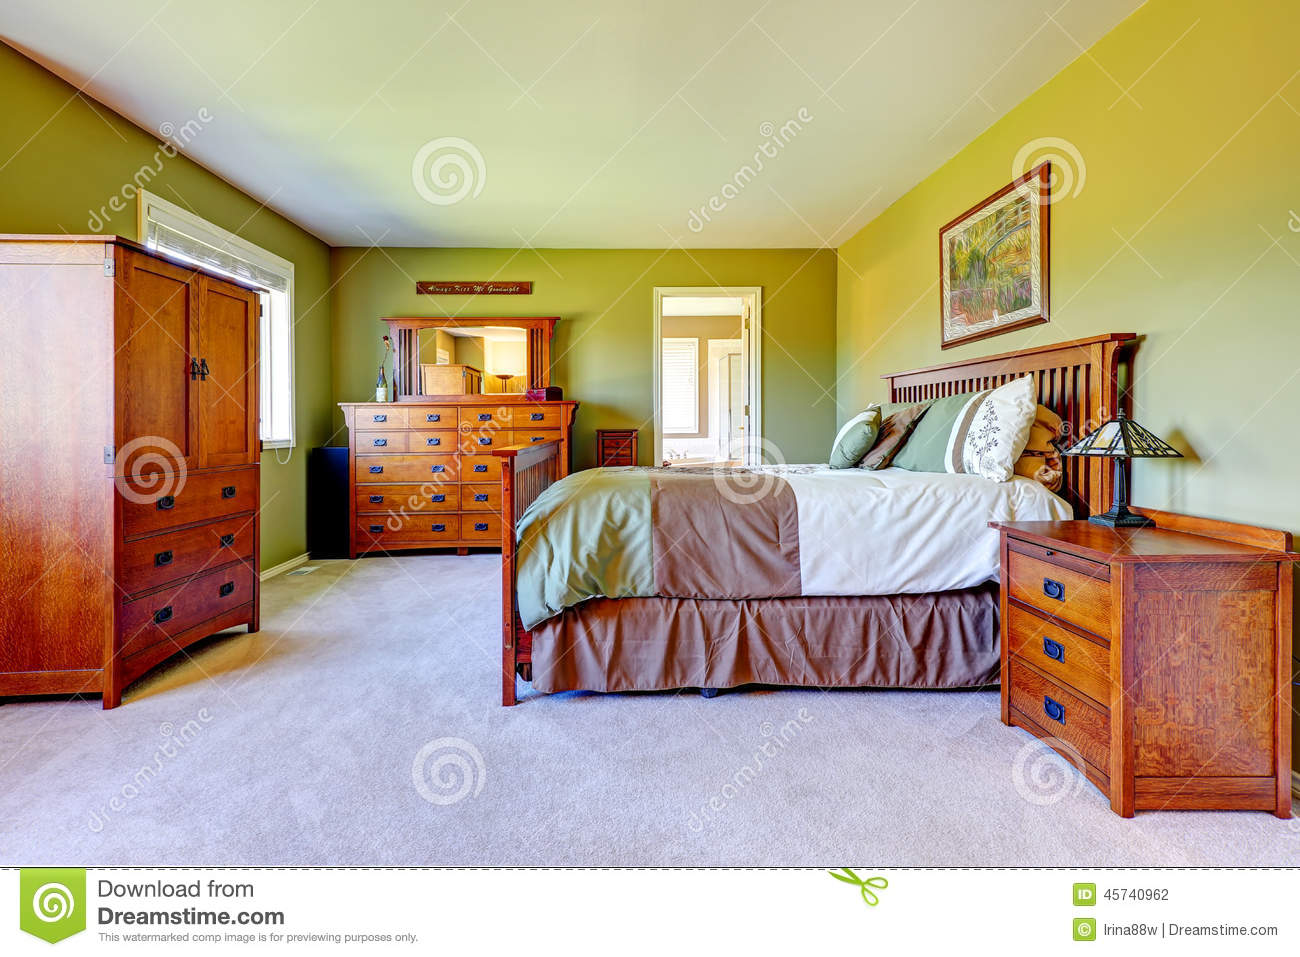 master bedroom interior in bright green color stock photo. Black Bedroom Furniture Sets. Home Design Ideas